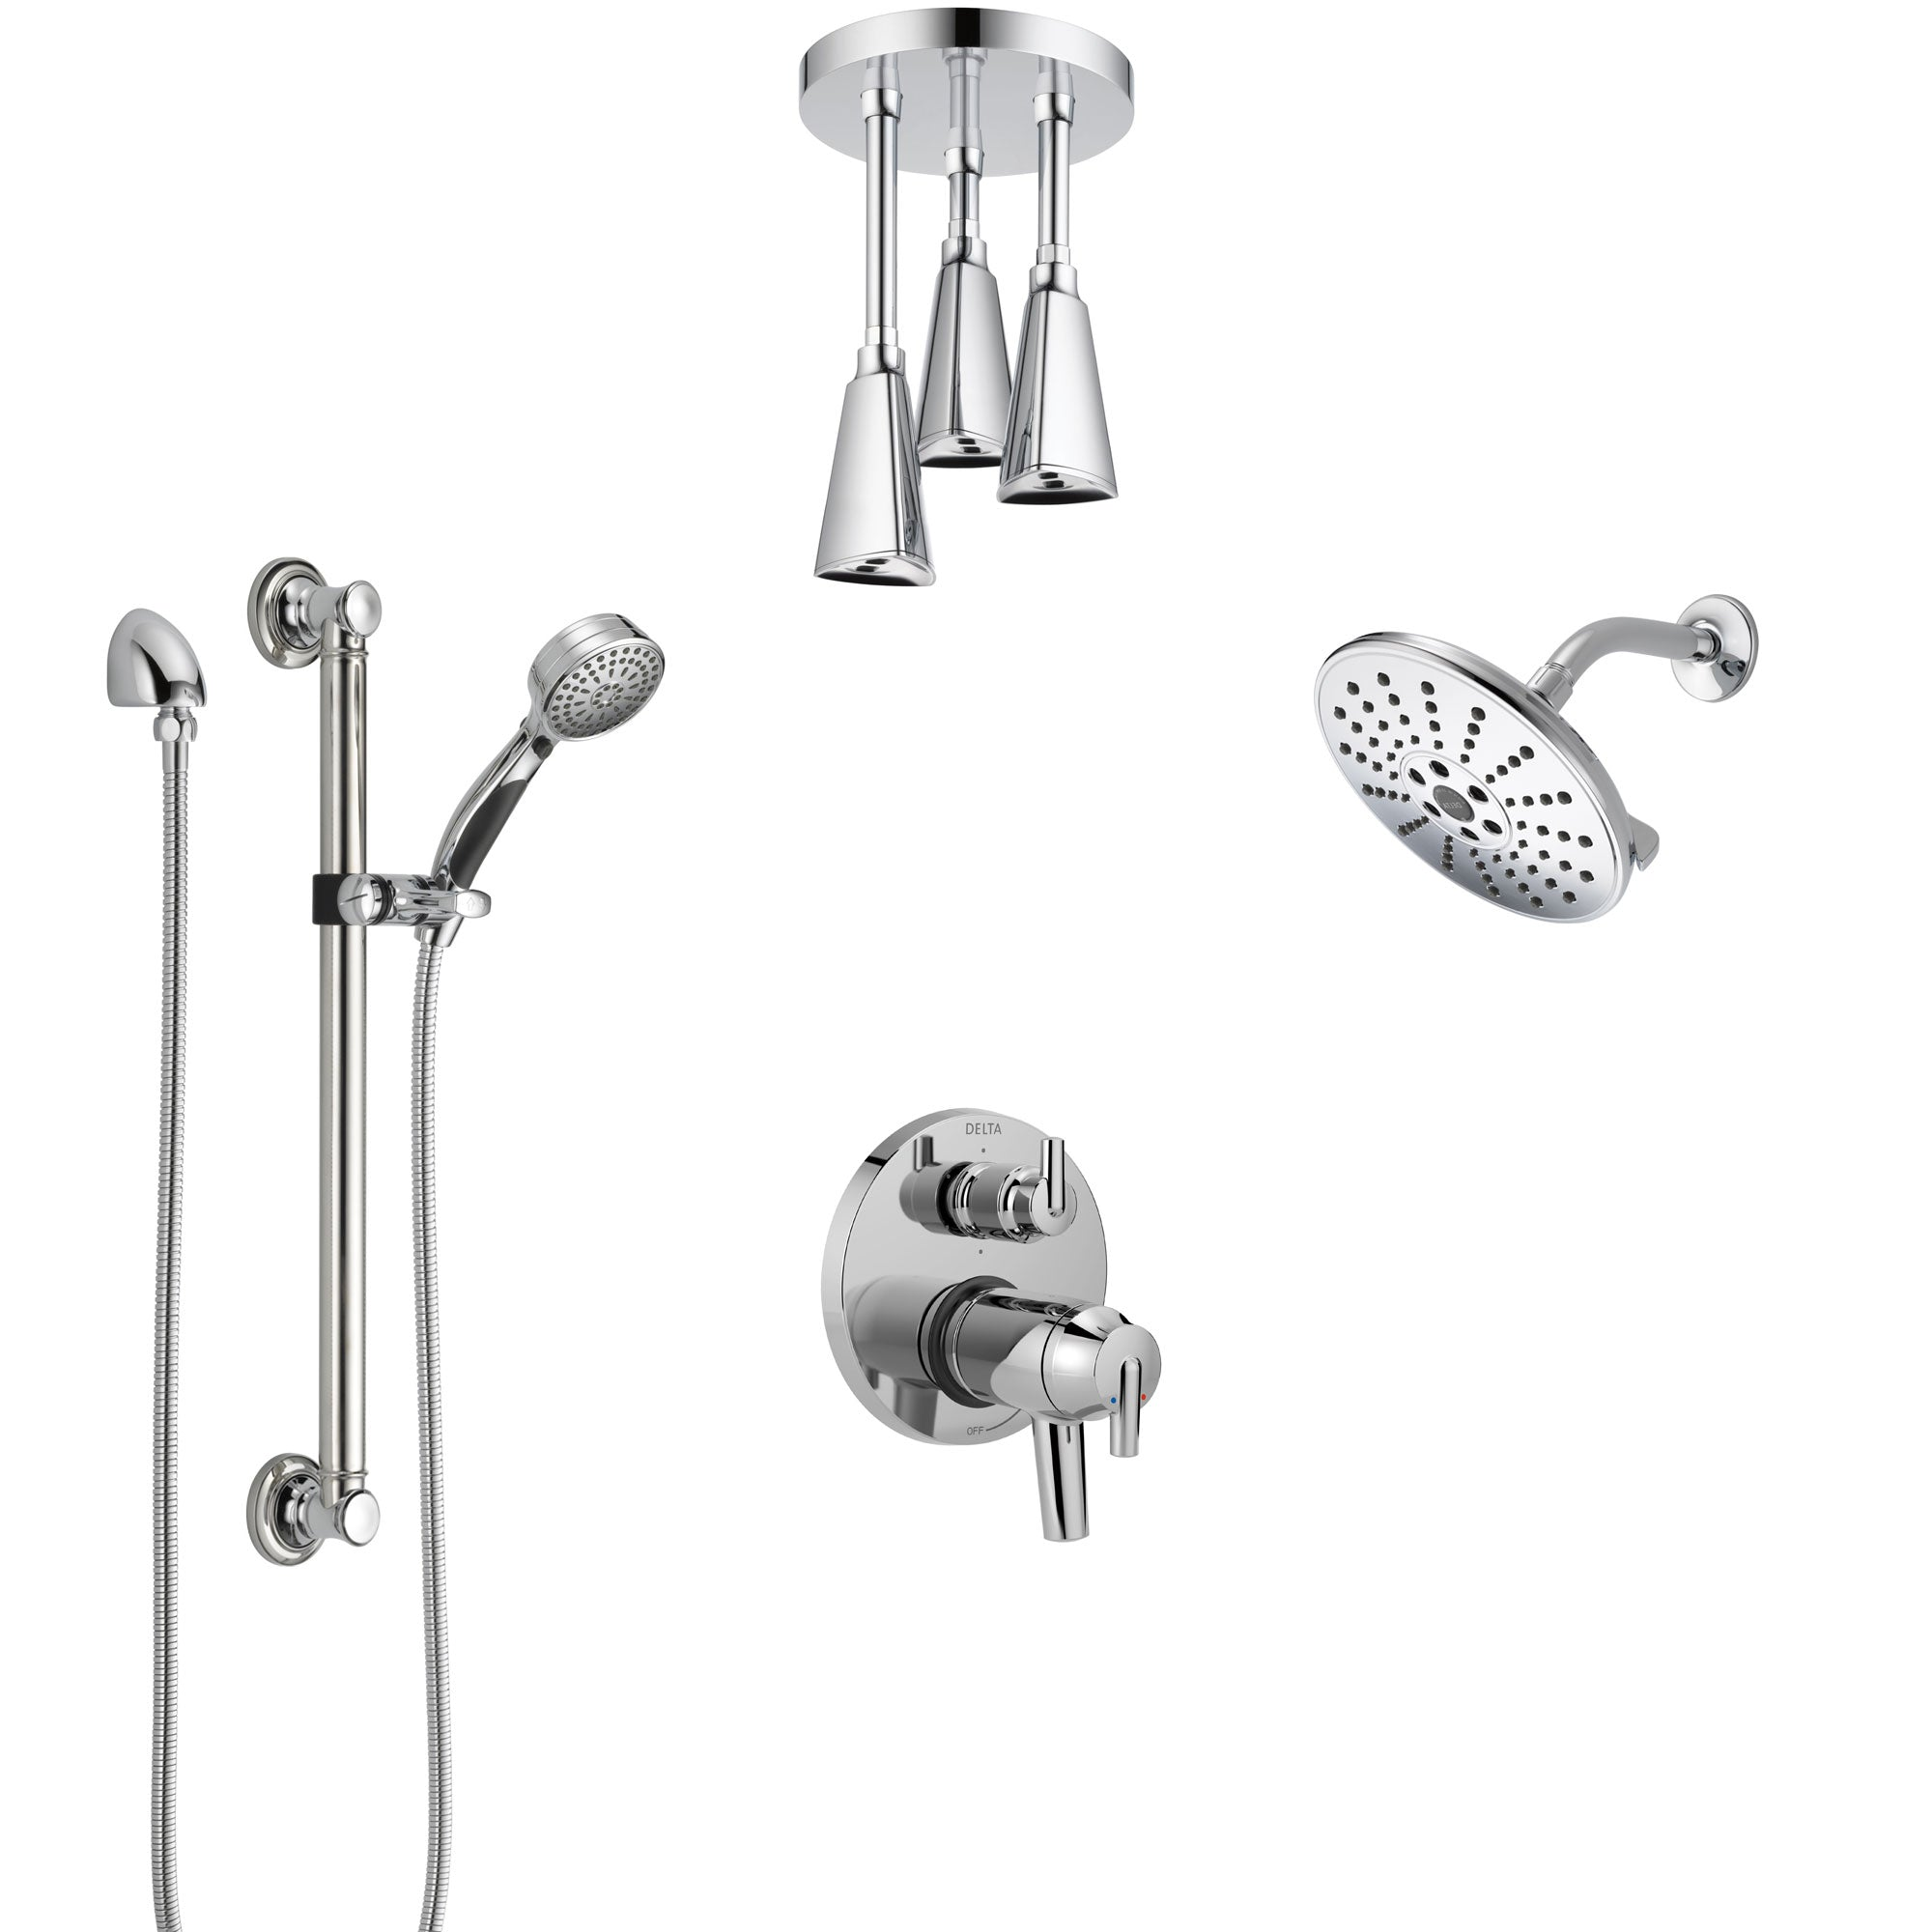 Delta Trinsic Chrome Dual Thermostatic Control Integrated Diverter Shower System, Showerhead, Ceiling Showerhead, and Grab Bar Hand Shower SS27T95911